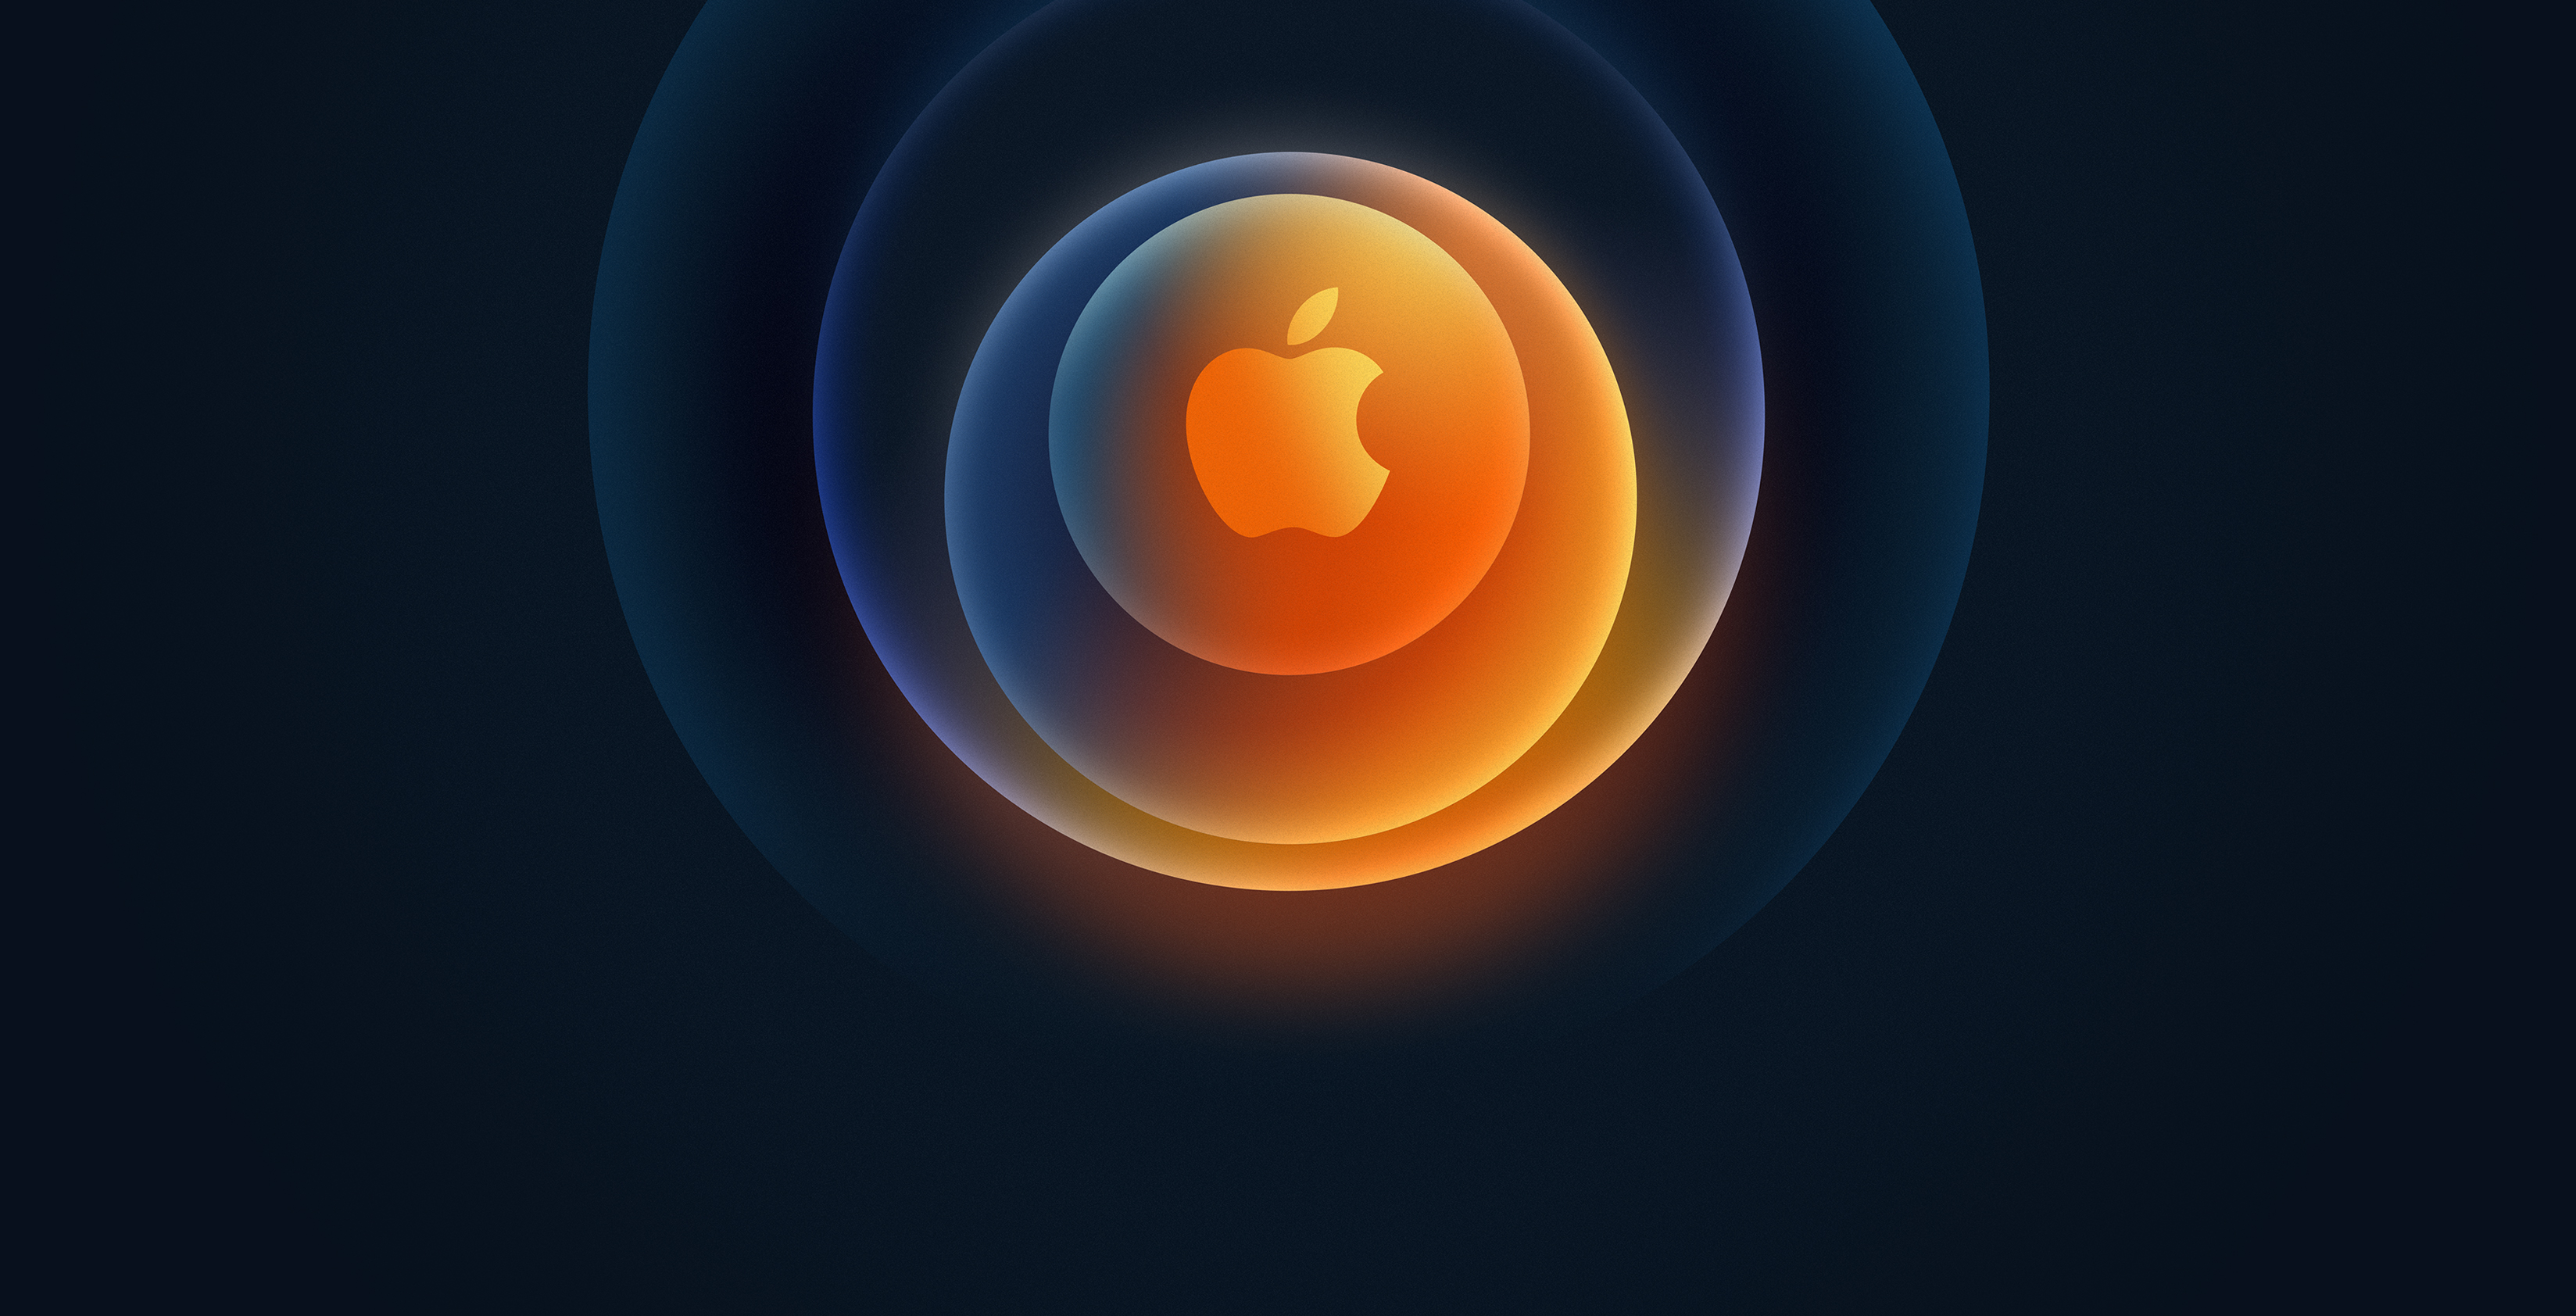 Download Apple Hi Speed Wallpaper For Iphone Ipad Mac All Other Resolutions